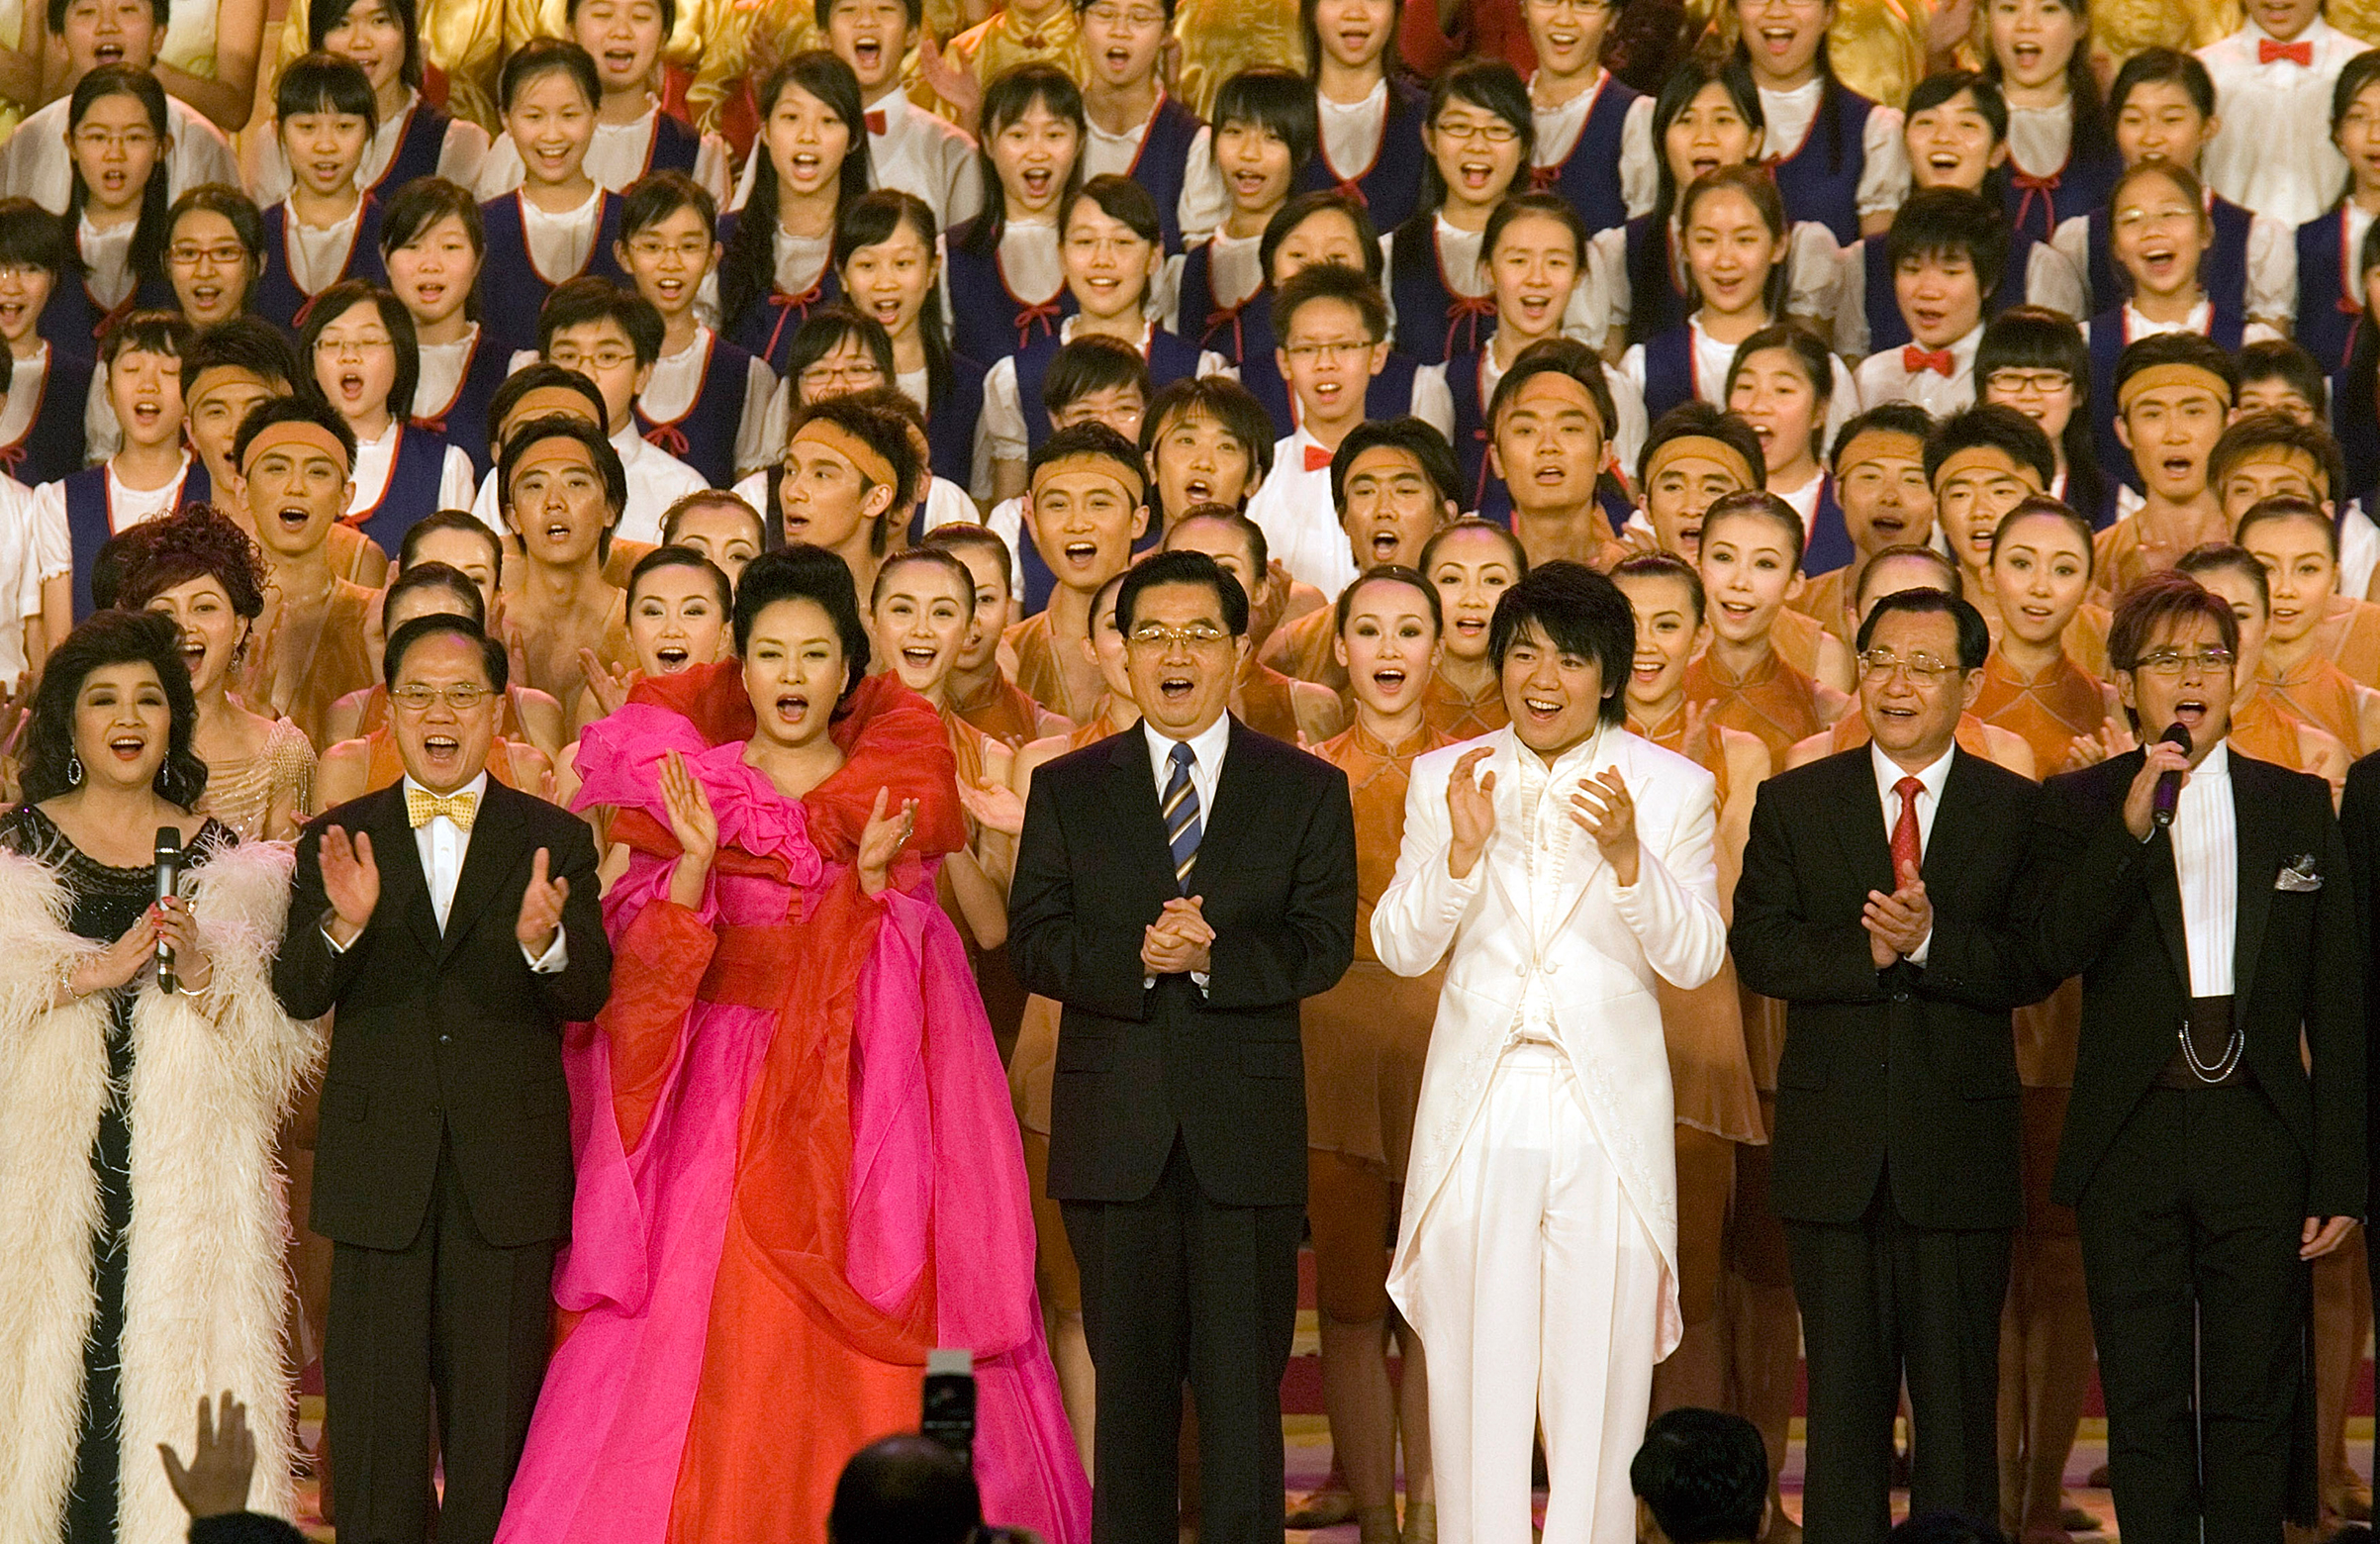 Chinese President Hu Jintao, center, sings on stage with performers at the conclusion of the Grand Variety Show in celebration of the 10th anniversary of the handover, in Hong Kong on June 30, 2007. Beneath the official cordiality, and outward prosperity, lay a city already worried about Beijing's encroachment on its freedoms and struggling to come to terms with its place in China. Many had started to regard China as an alien power and themselves as not Chinese but Hongkongers first and foremost.